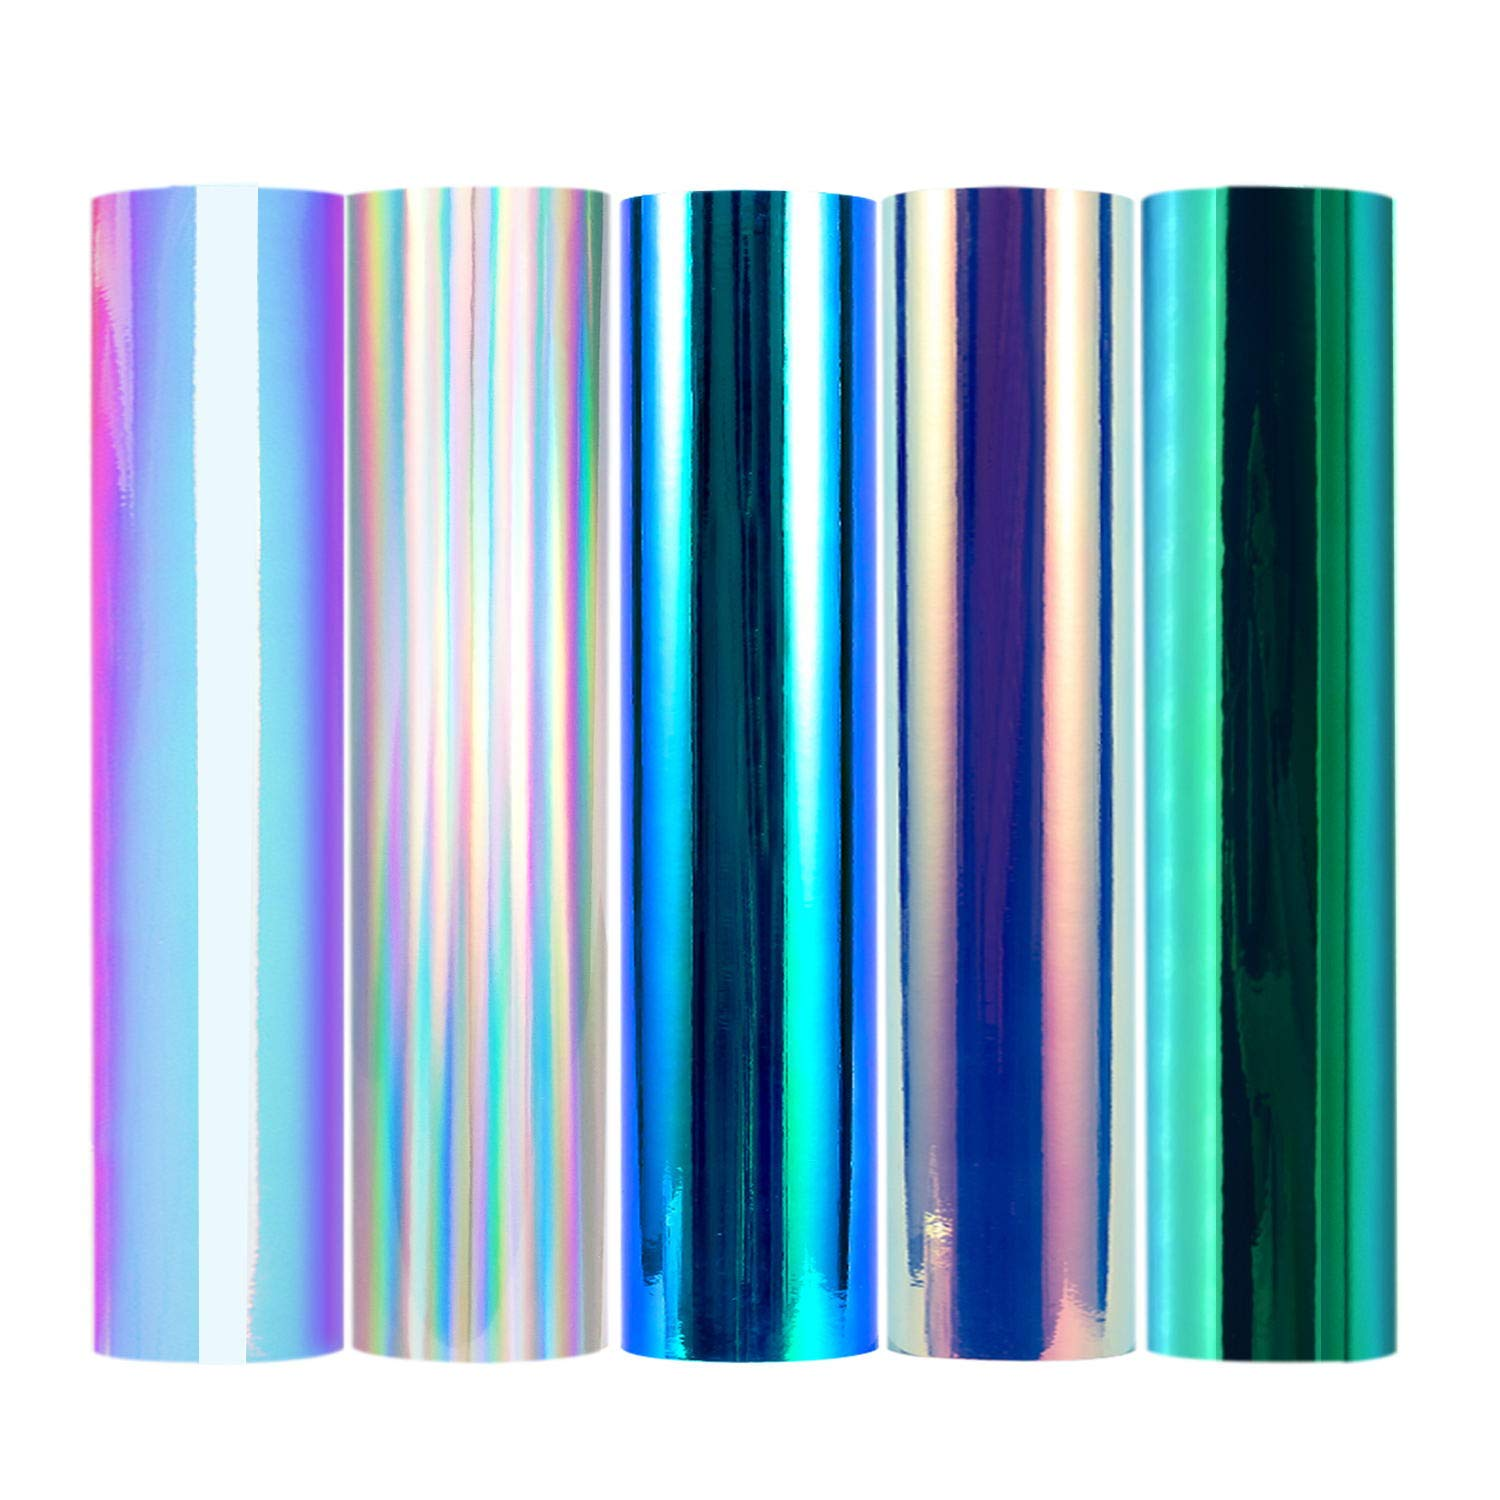 TECKWRAP Holographic Chrome Vinyl Sheets, Mystic Forest